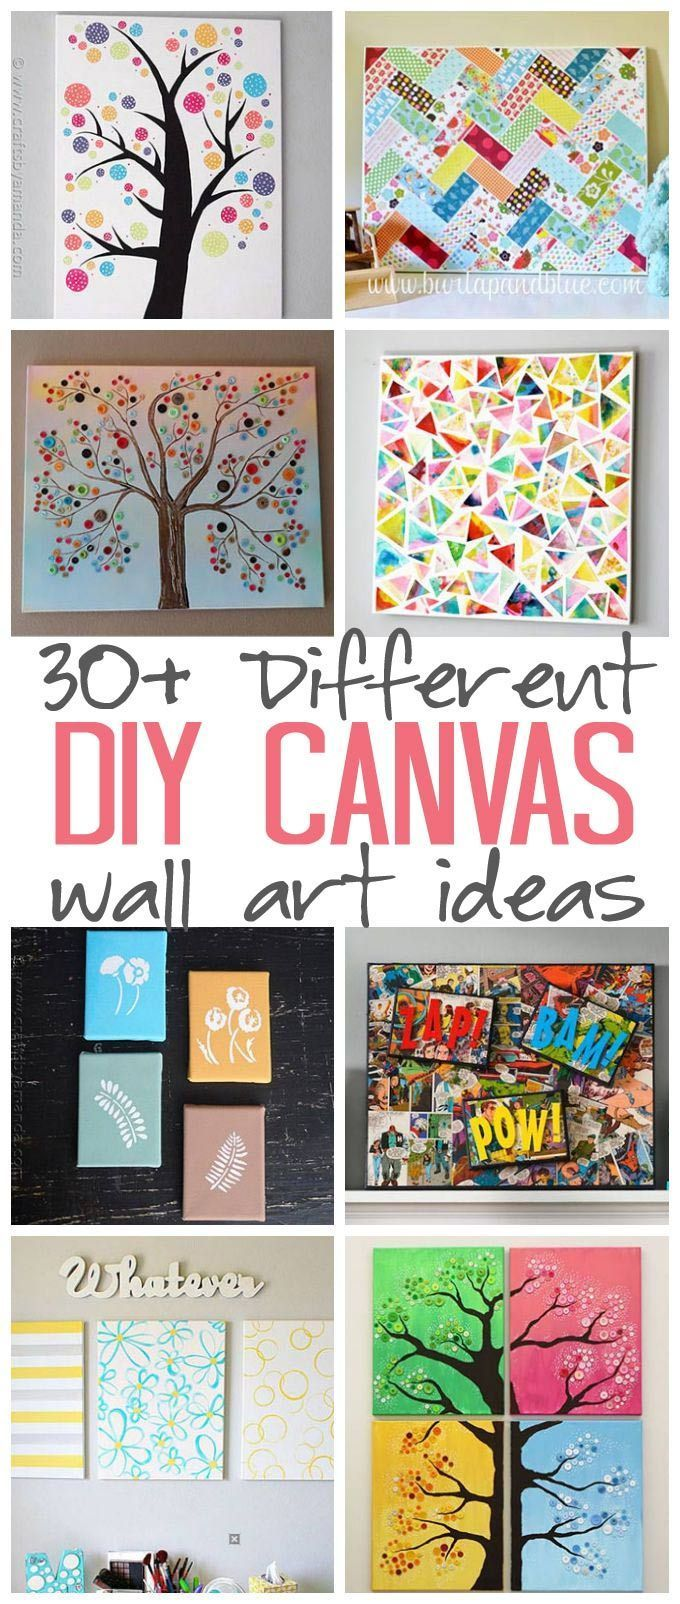 DIY Canvas Wall Art Ideas 30+ canvas tutorials for adults